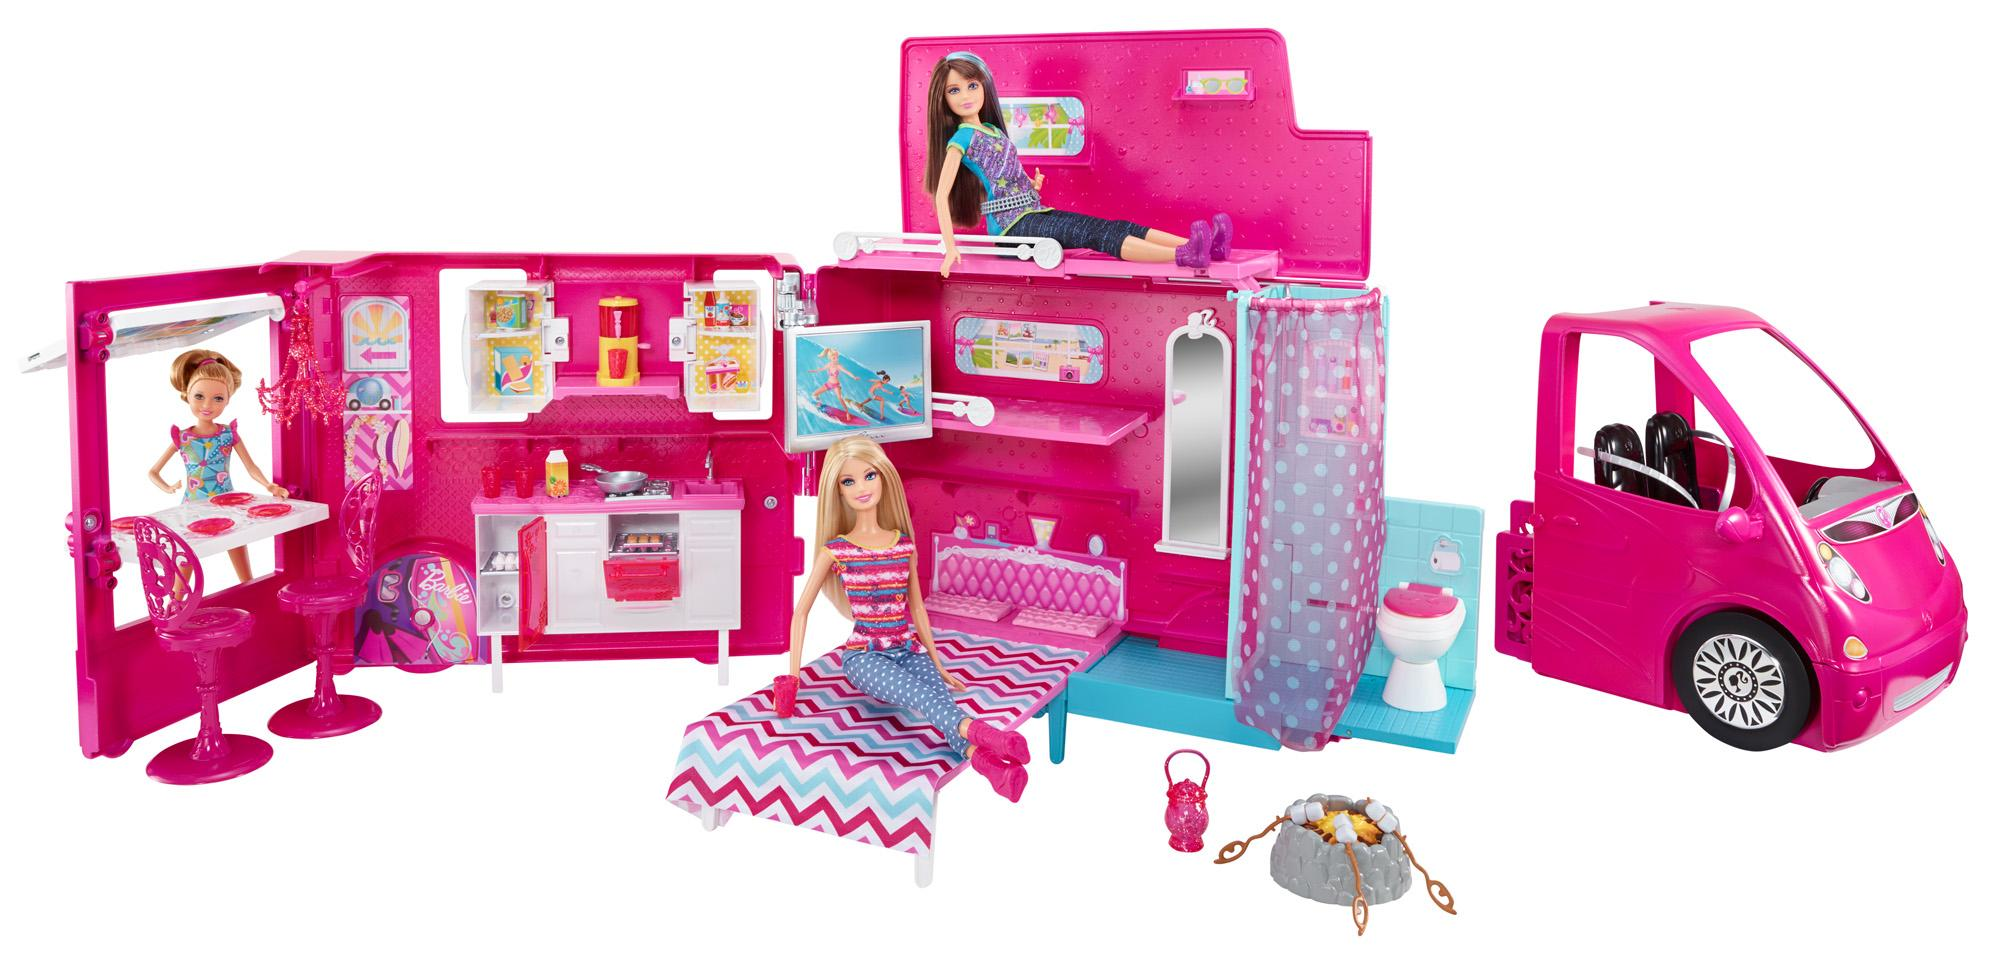 Mattel Barbie Sisters Doll Dream Life In The Dreamhouse